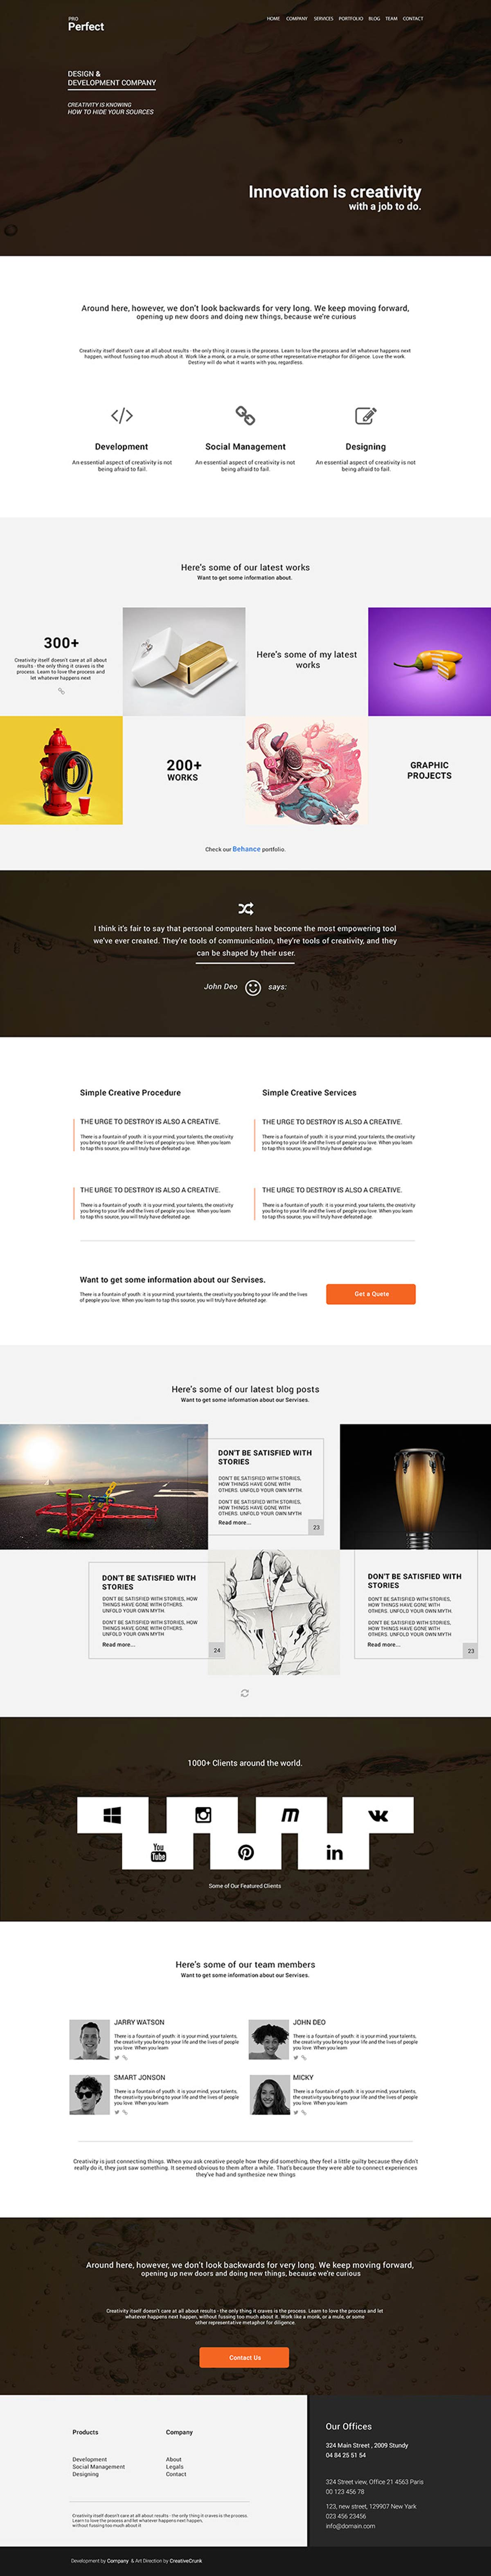 ProPerfect-–-Multipurpose-One-Page-Psd-Template-Free-Download